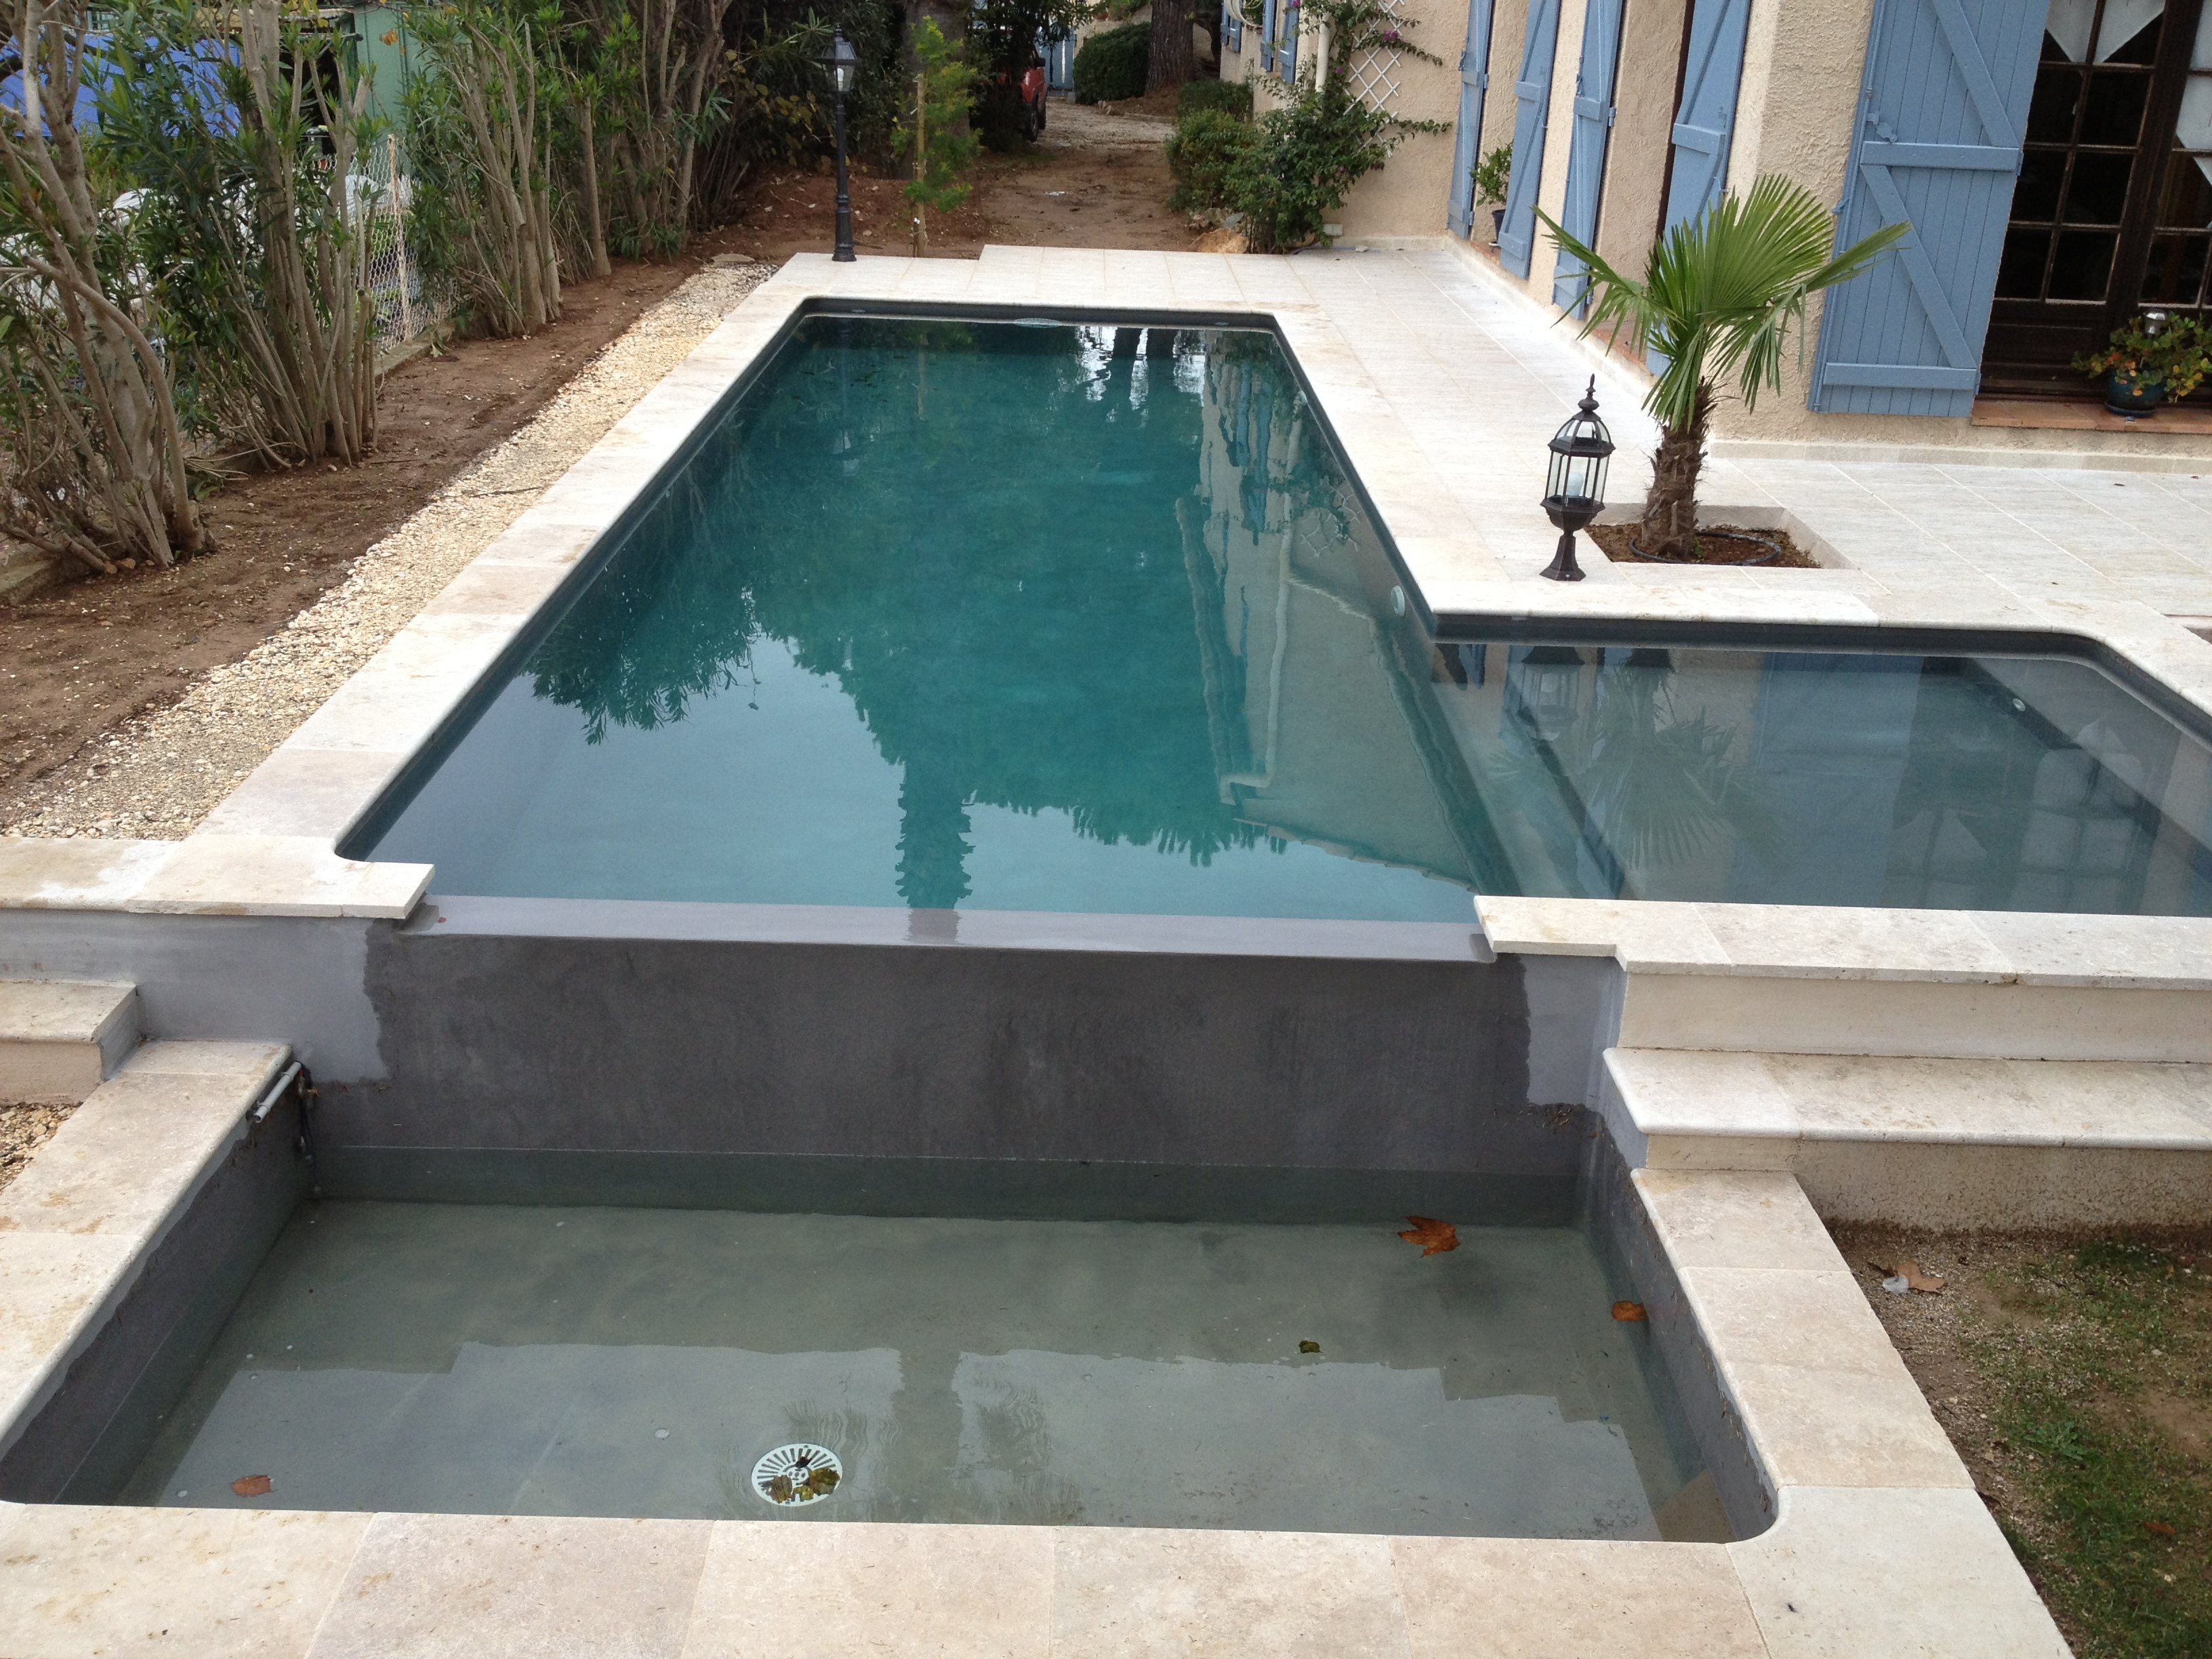 ... Piscine En B Ton For Piscine En Beton · Construction ...